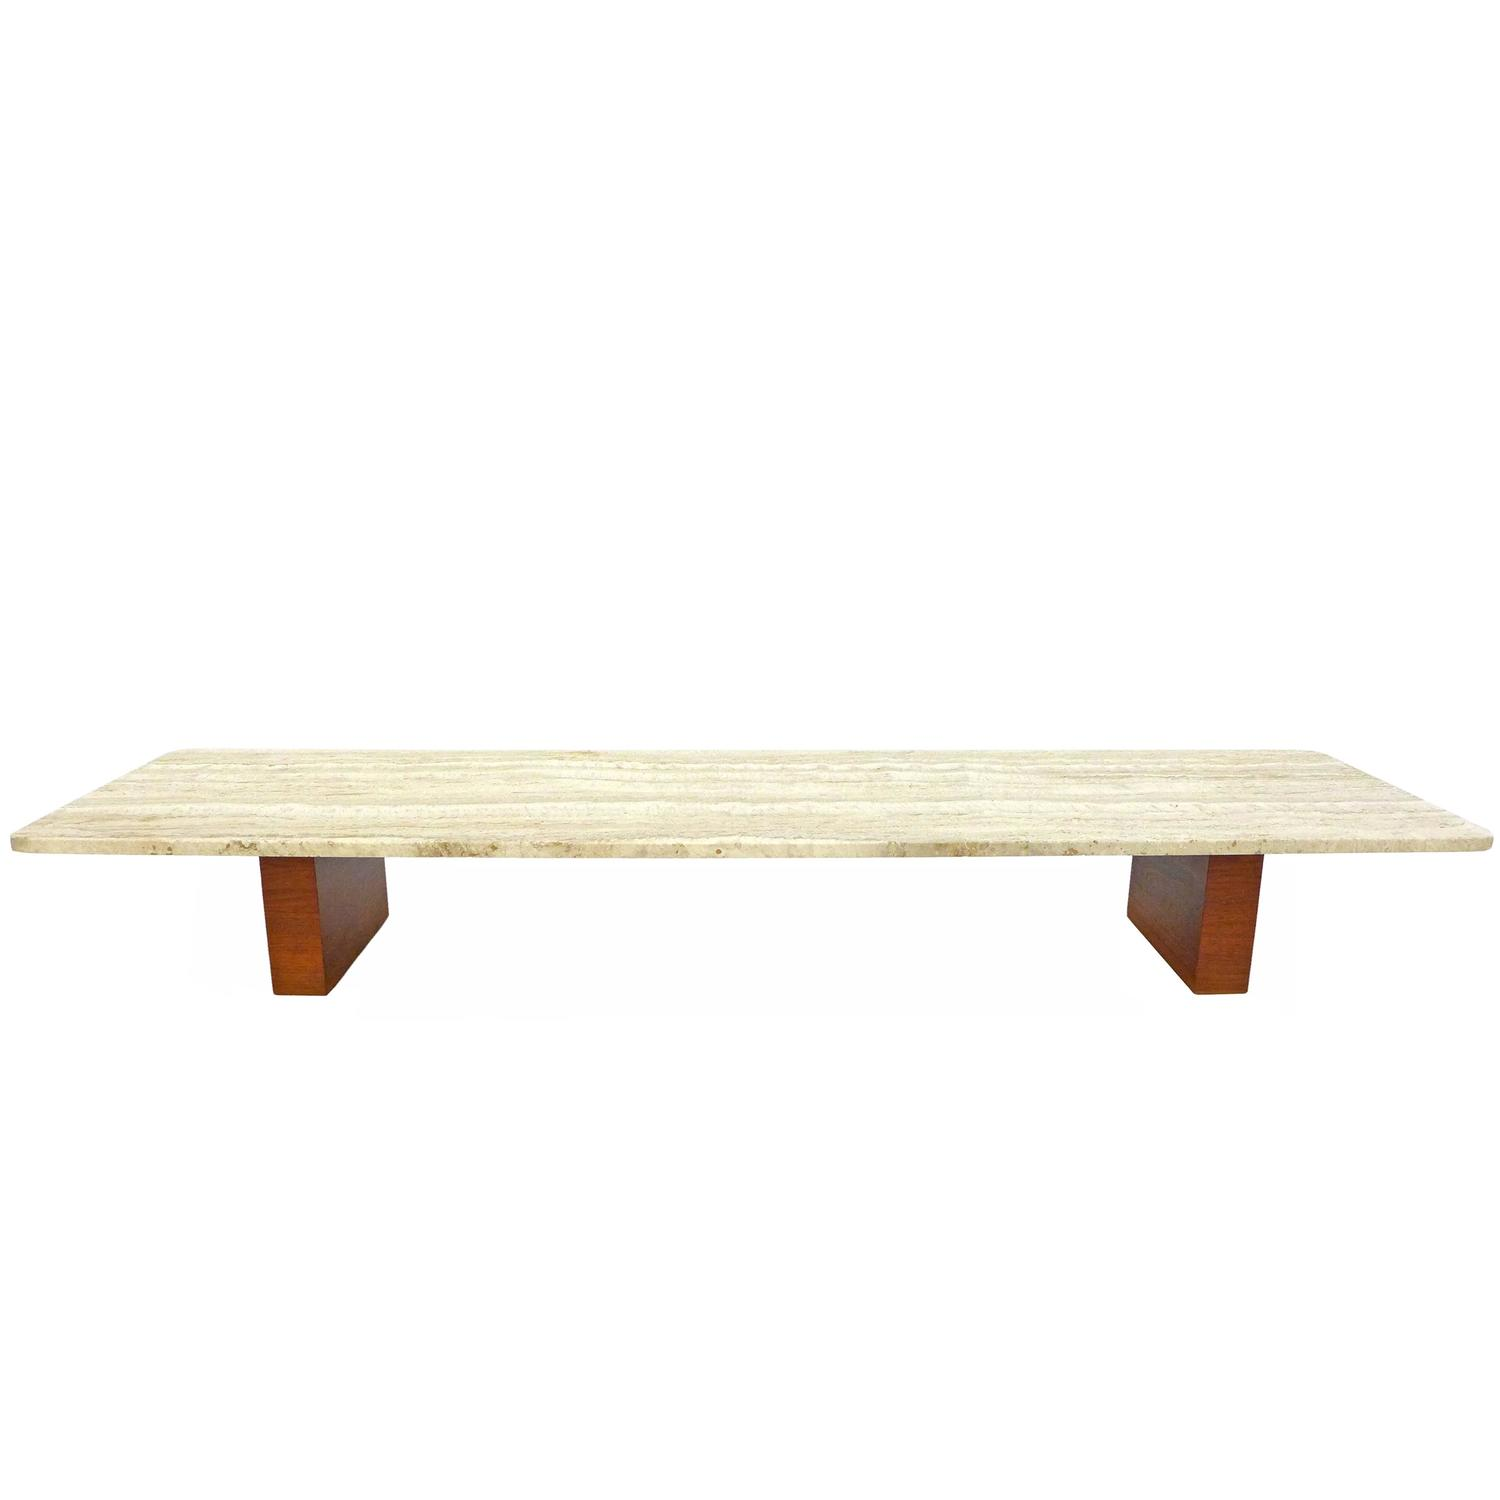 Low travertine and wood coffee table at 1stdibs for Low coffee table wood